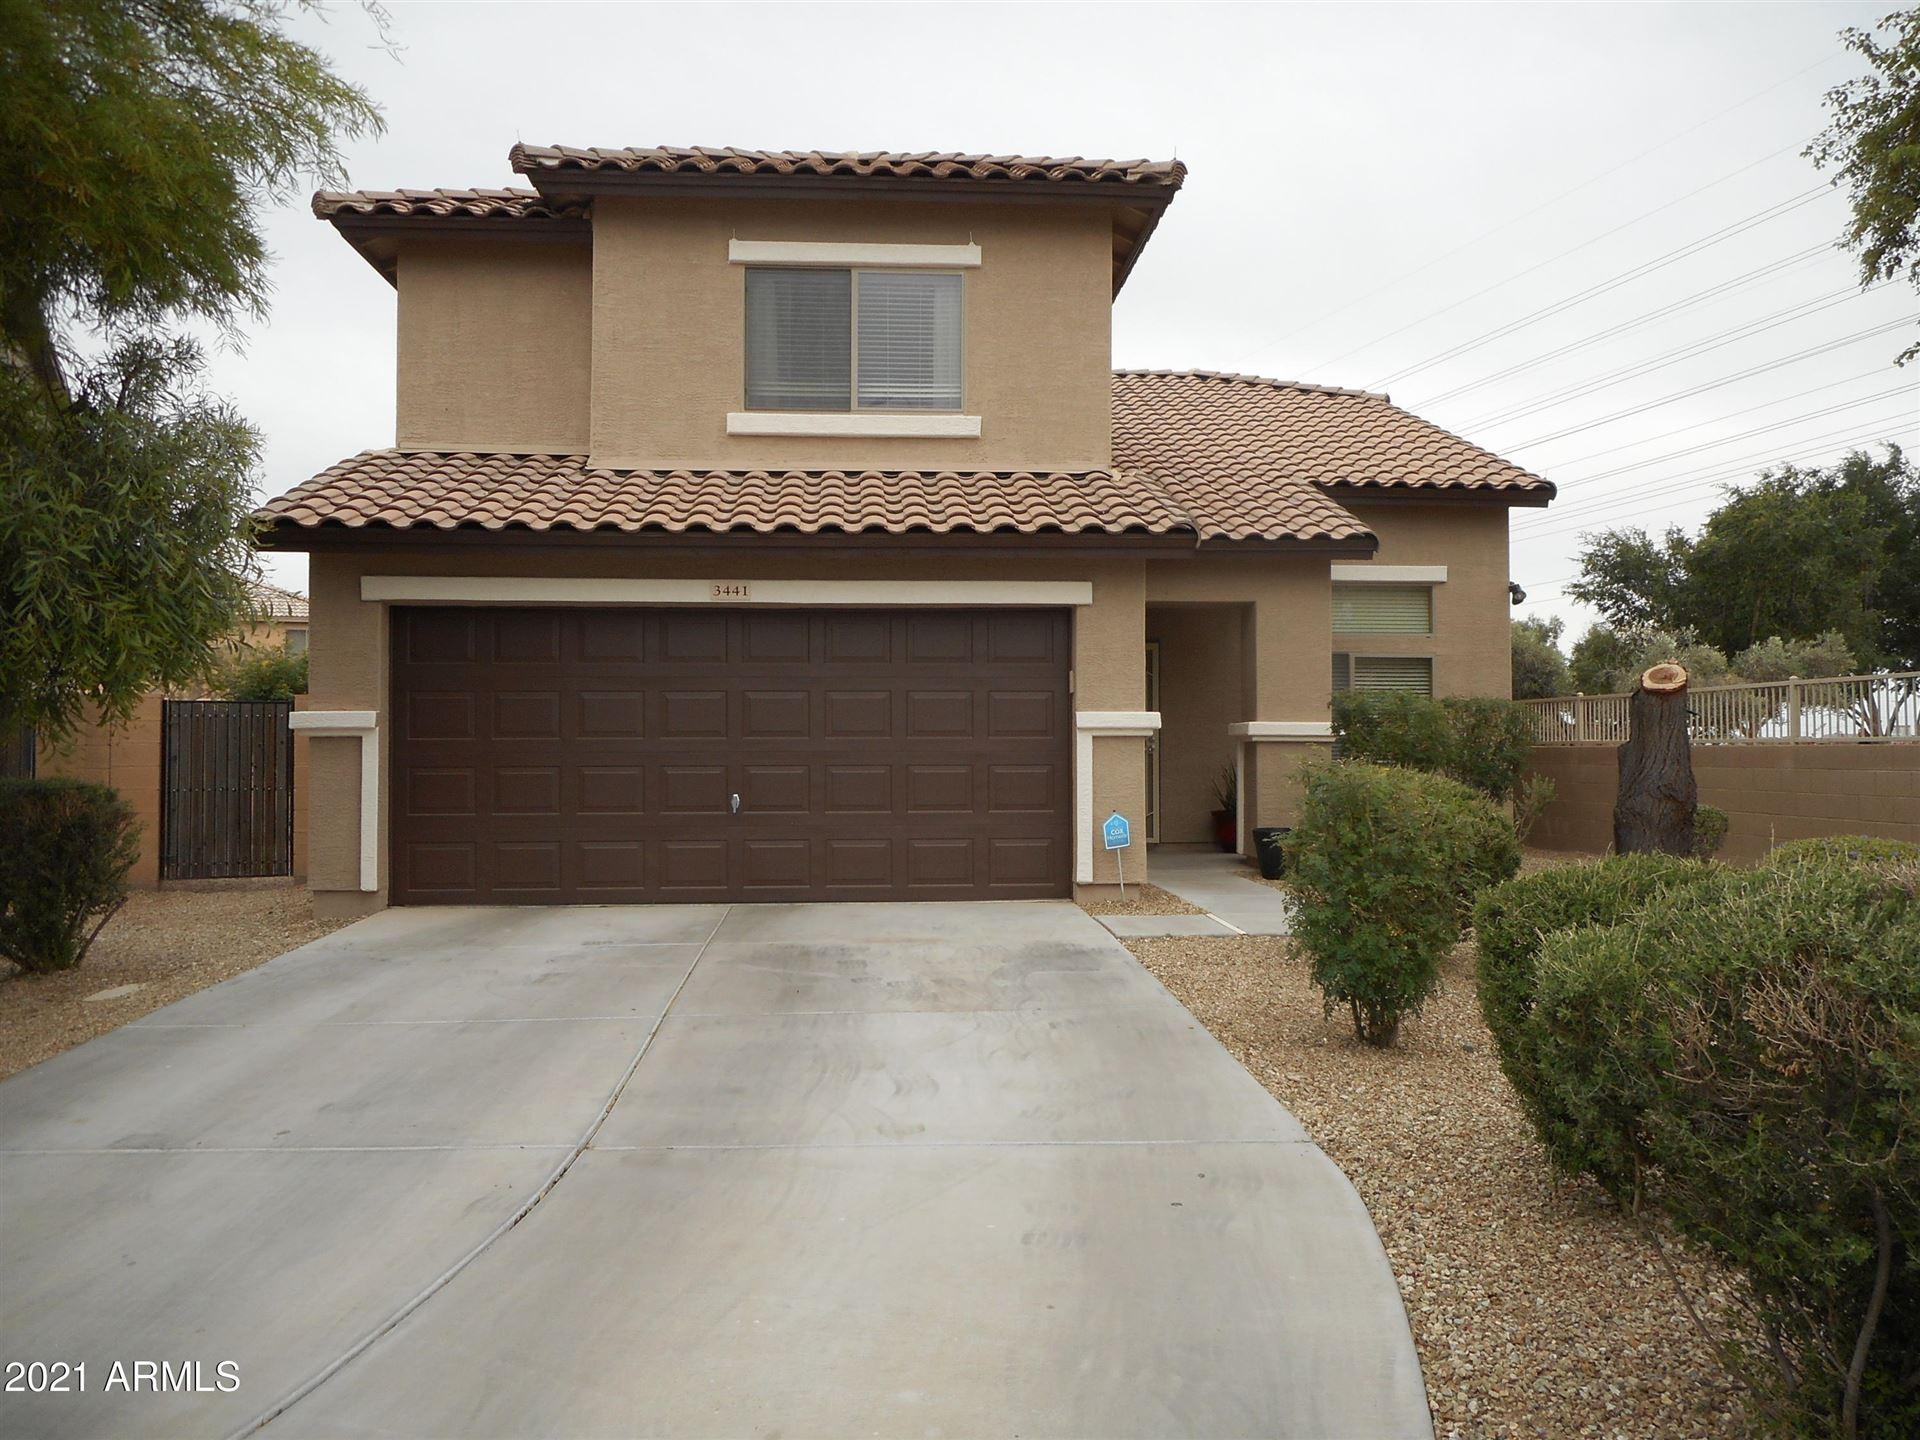 Photo of 3441 S 97TH Lane, Tolleson, AZ 85353 (MLS # 6230137)